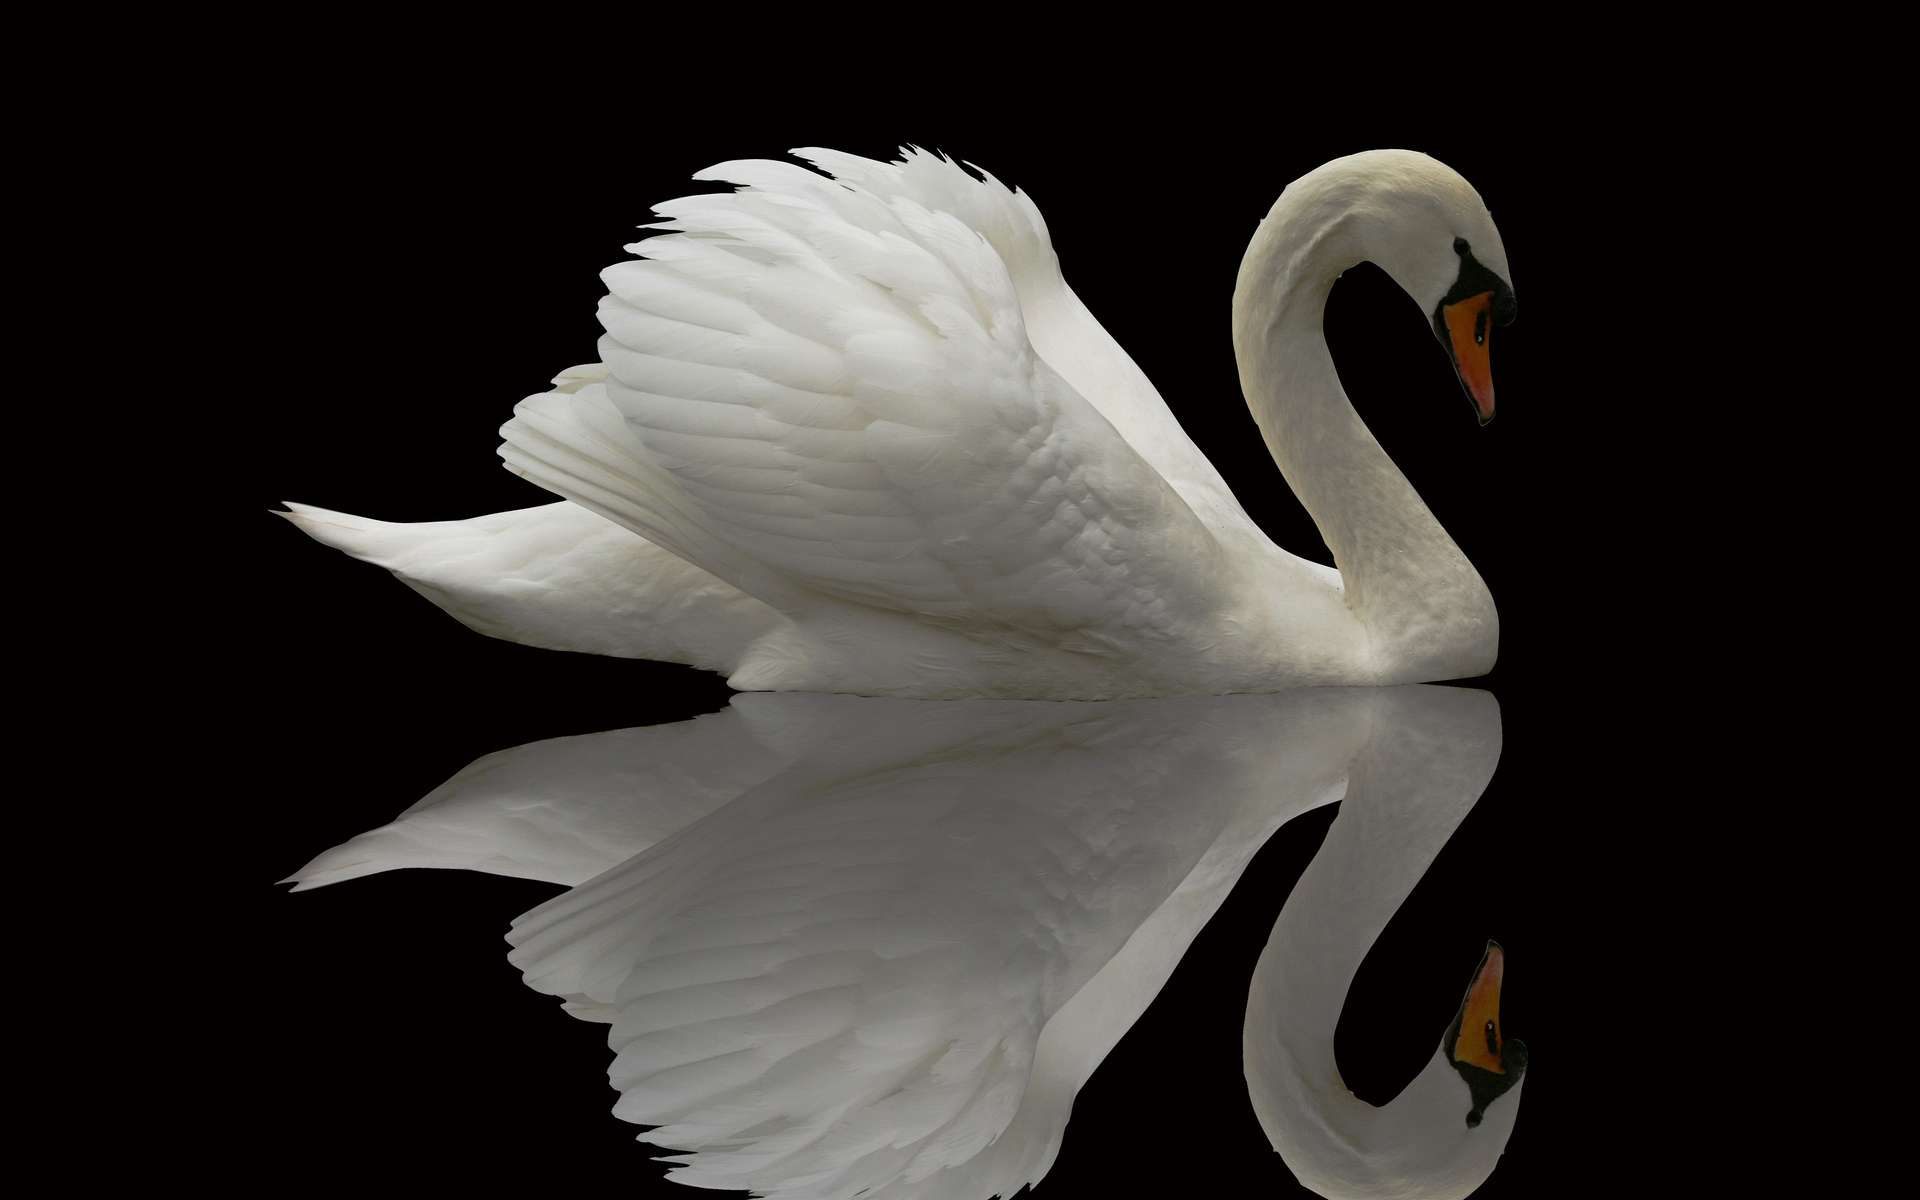 Swan bird wallpaper - photo#1